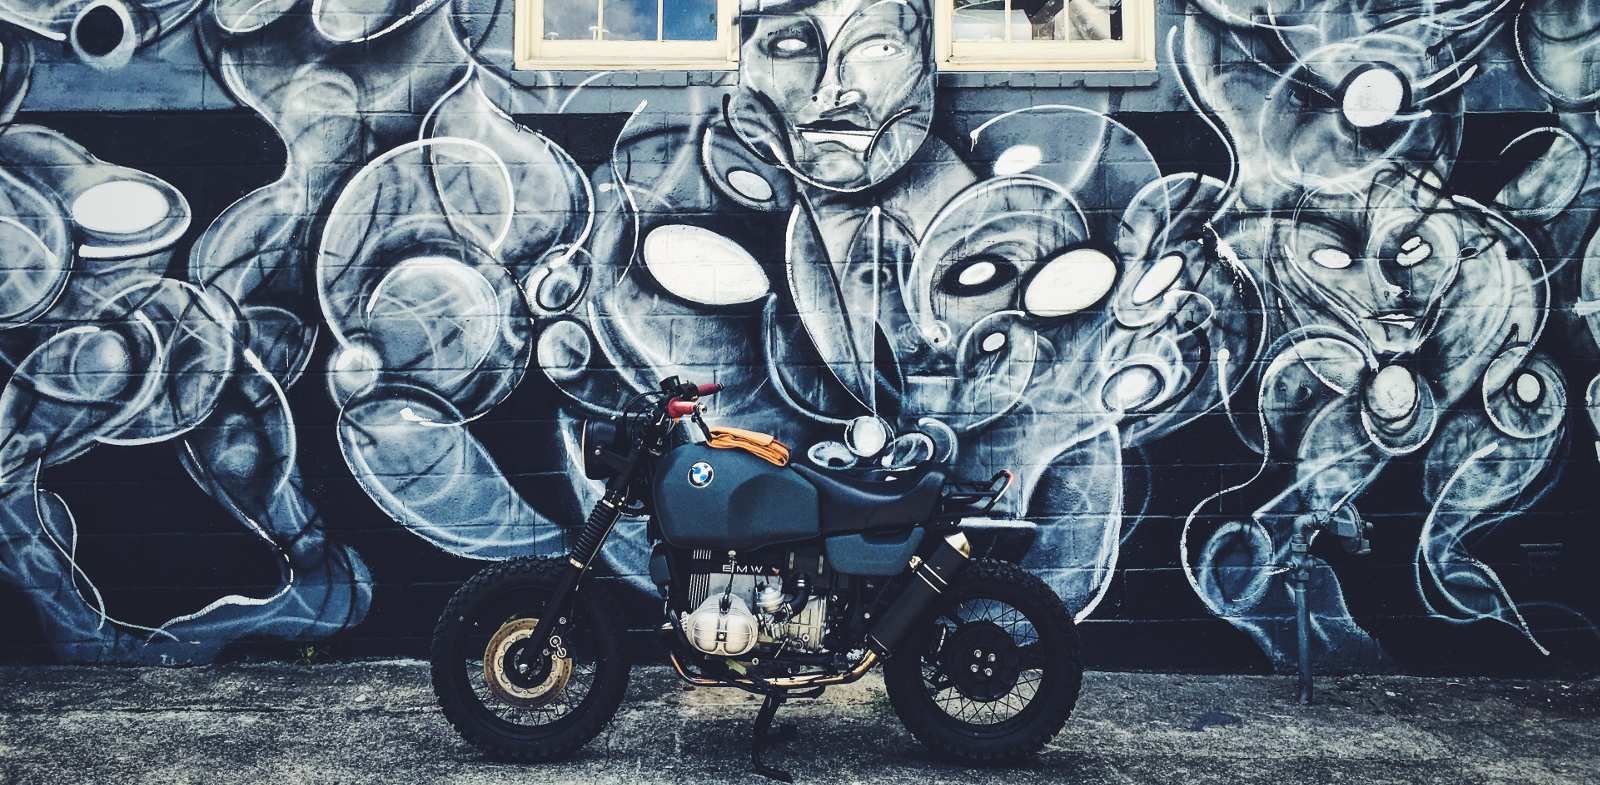 Rebuilt custom BMW motorcycle